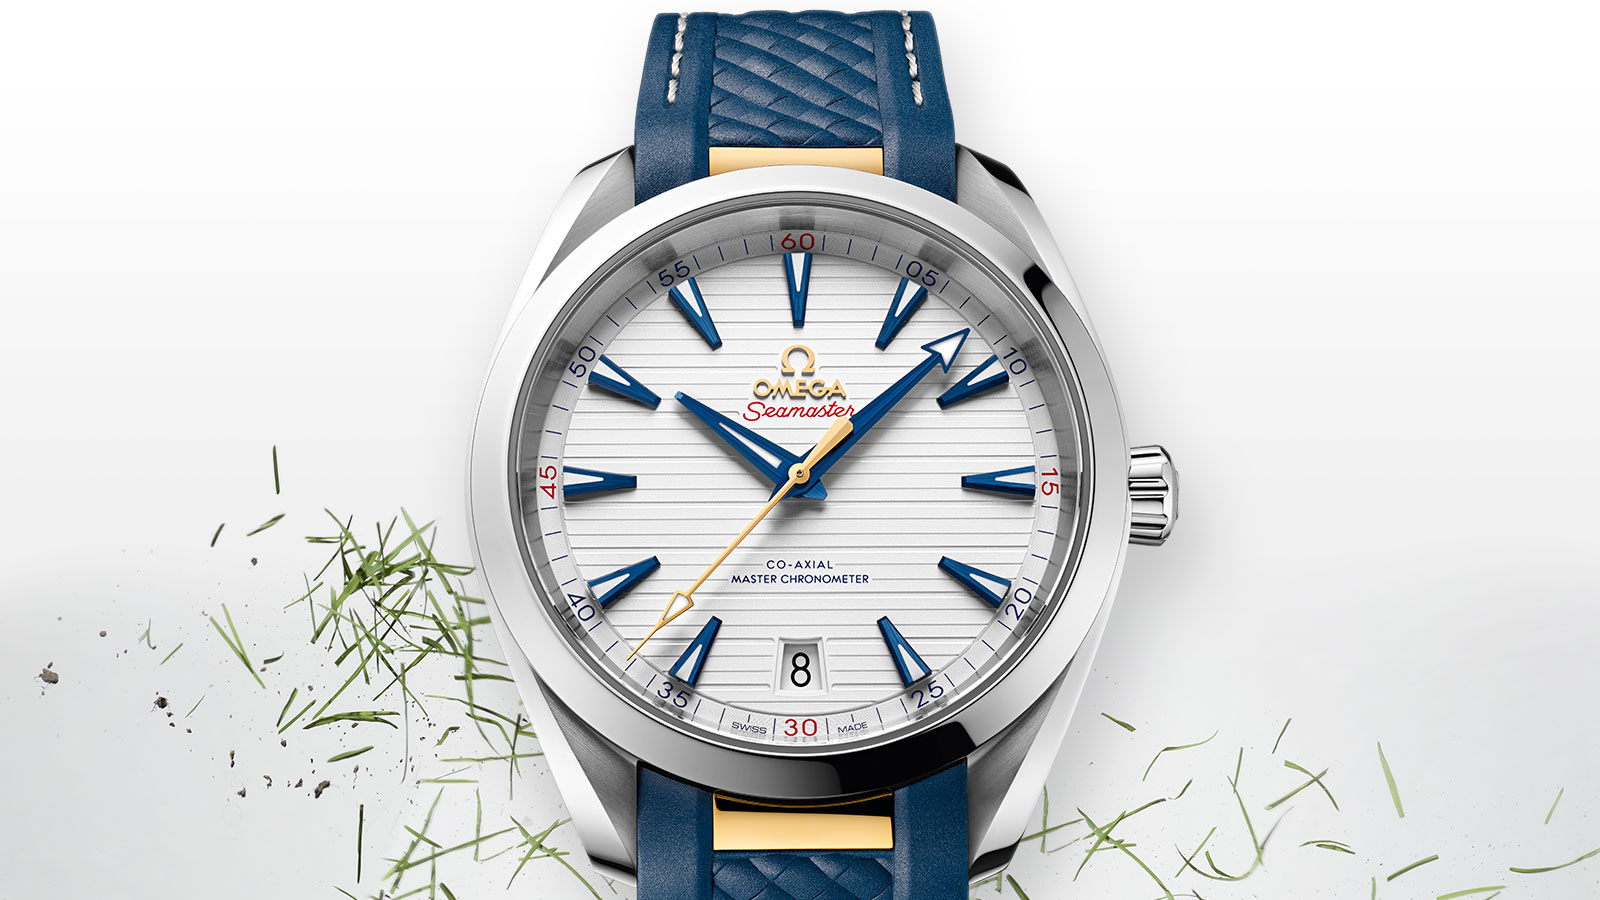 Seamaster アクアテラ 150M Aqua Terra 150M Omega Co‑Axial Master Chronometer 41 mm ウォッチ - 220.12.41.21.02.004